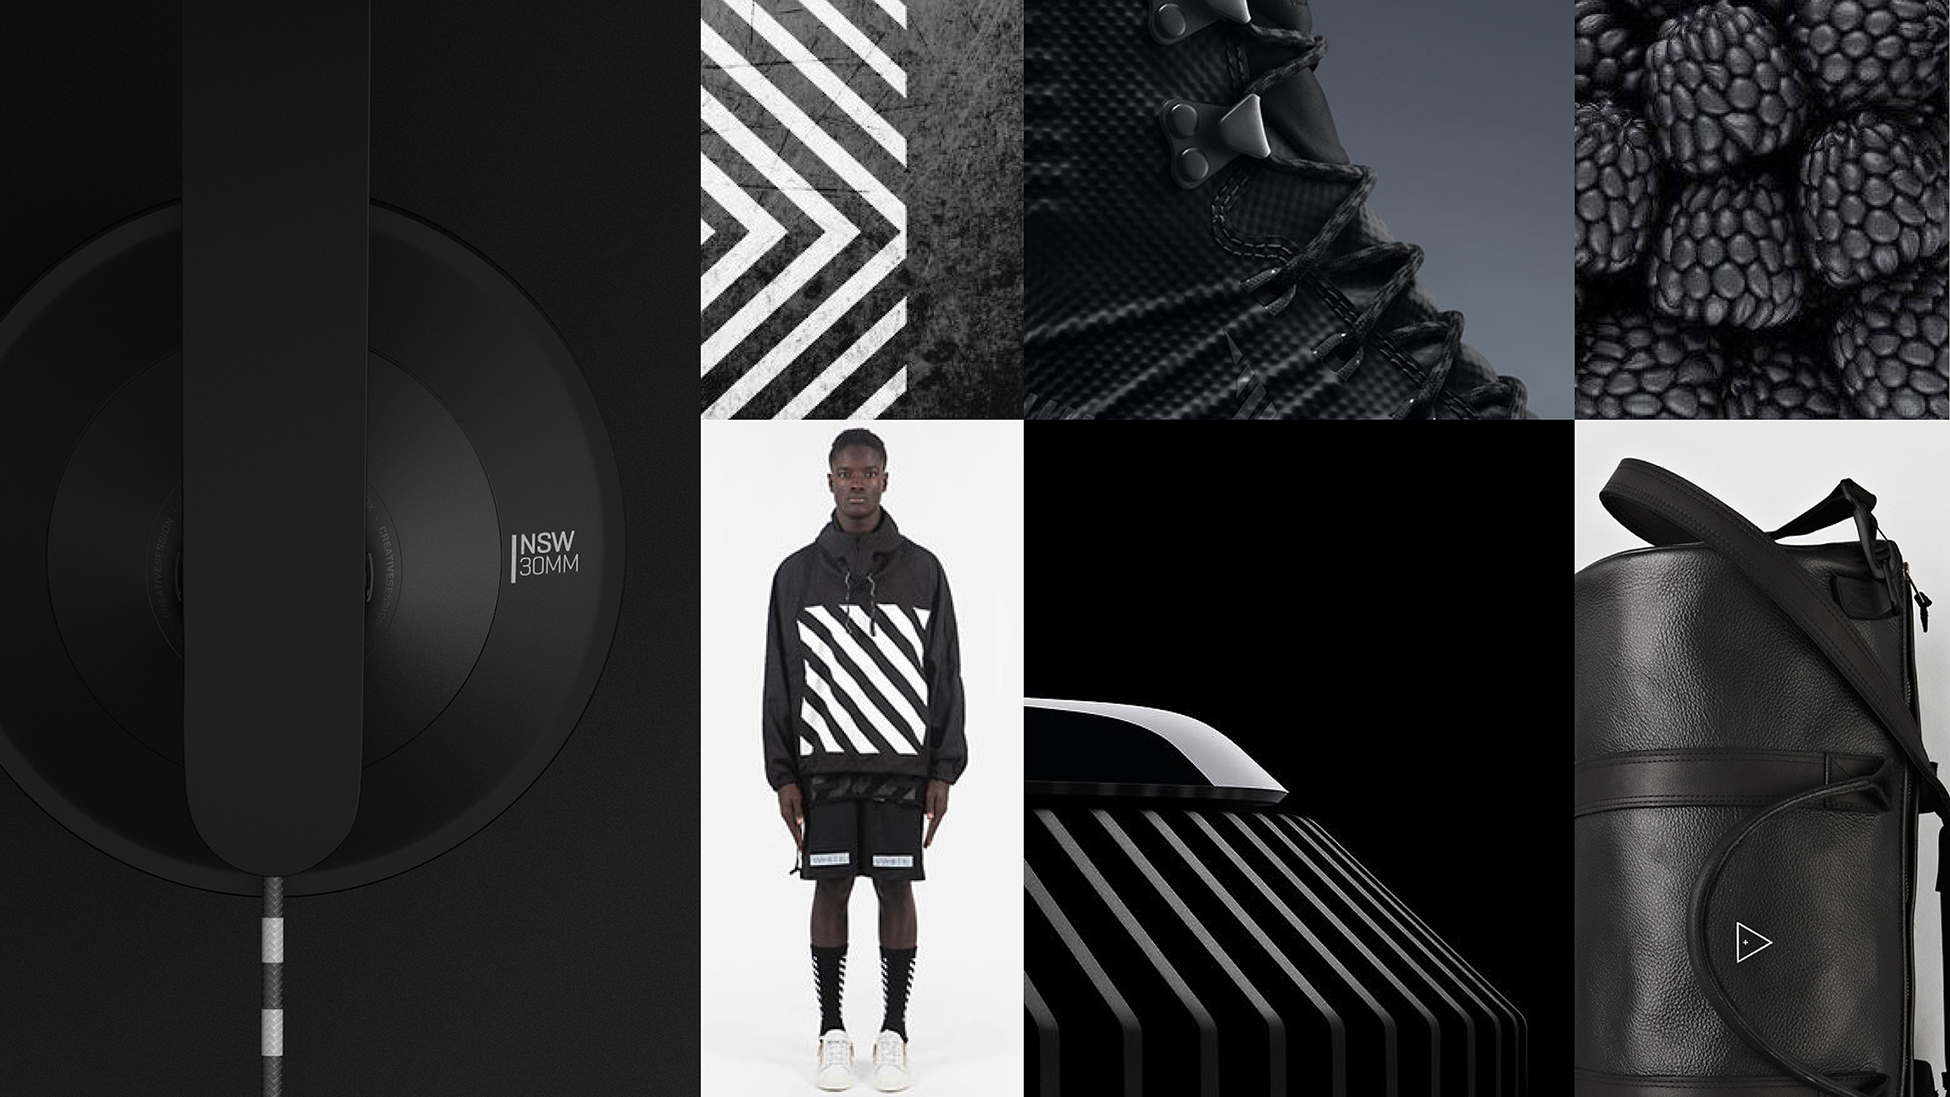 design anh creativesession nsw nike black